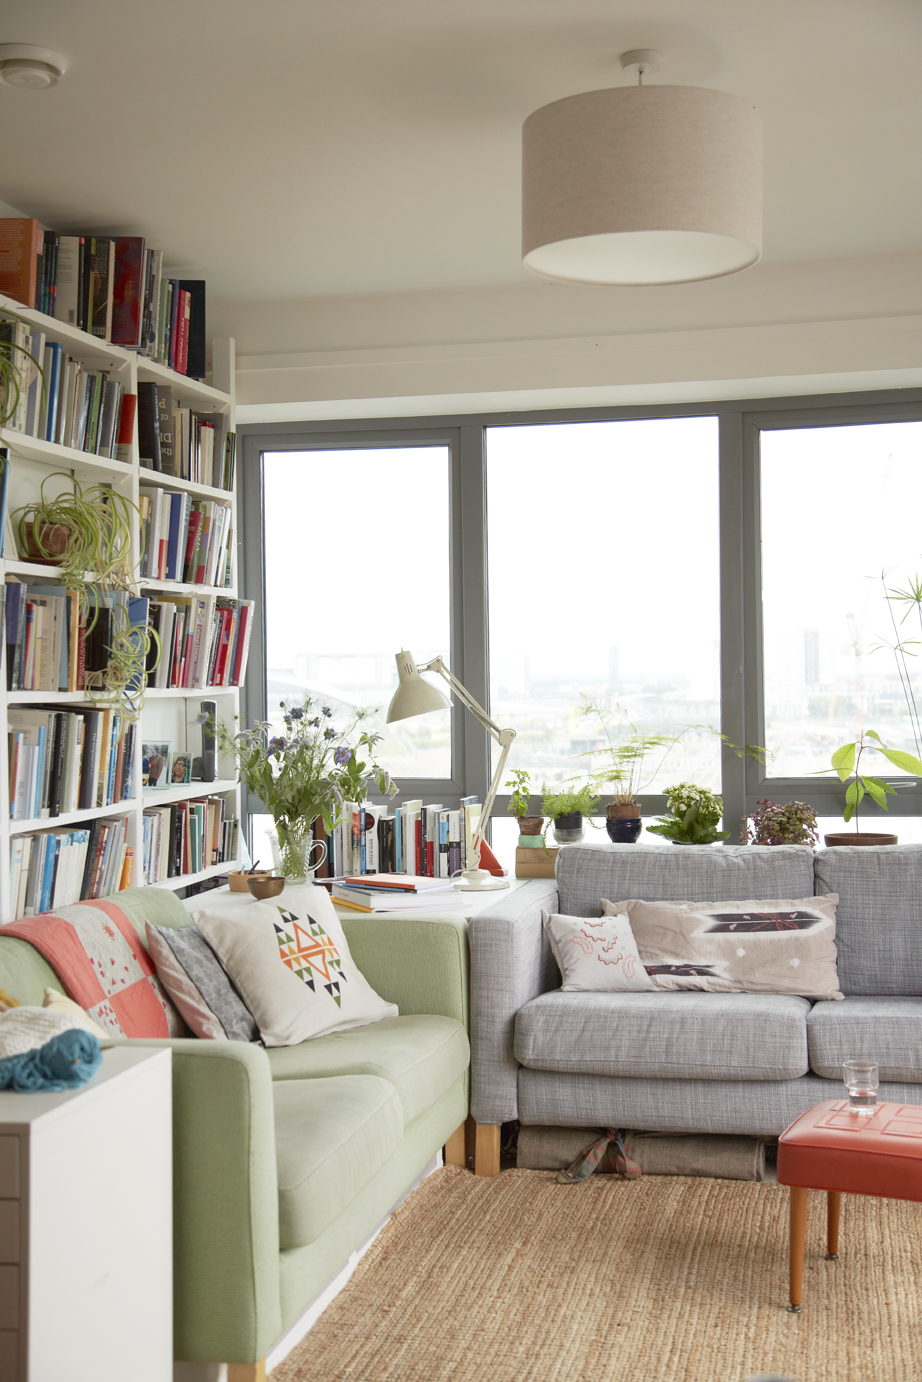 Image taken from Home for Now by Joanna Thornhill (CICO Books) - Living Room - Home of Anna Alicia